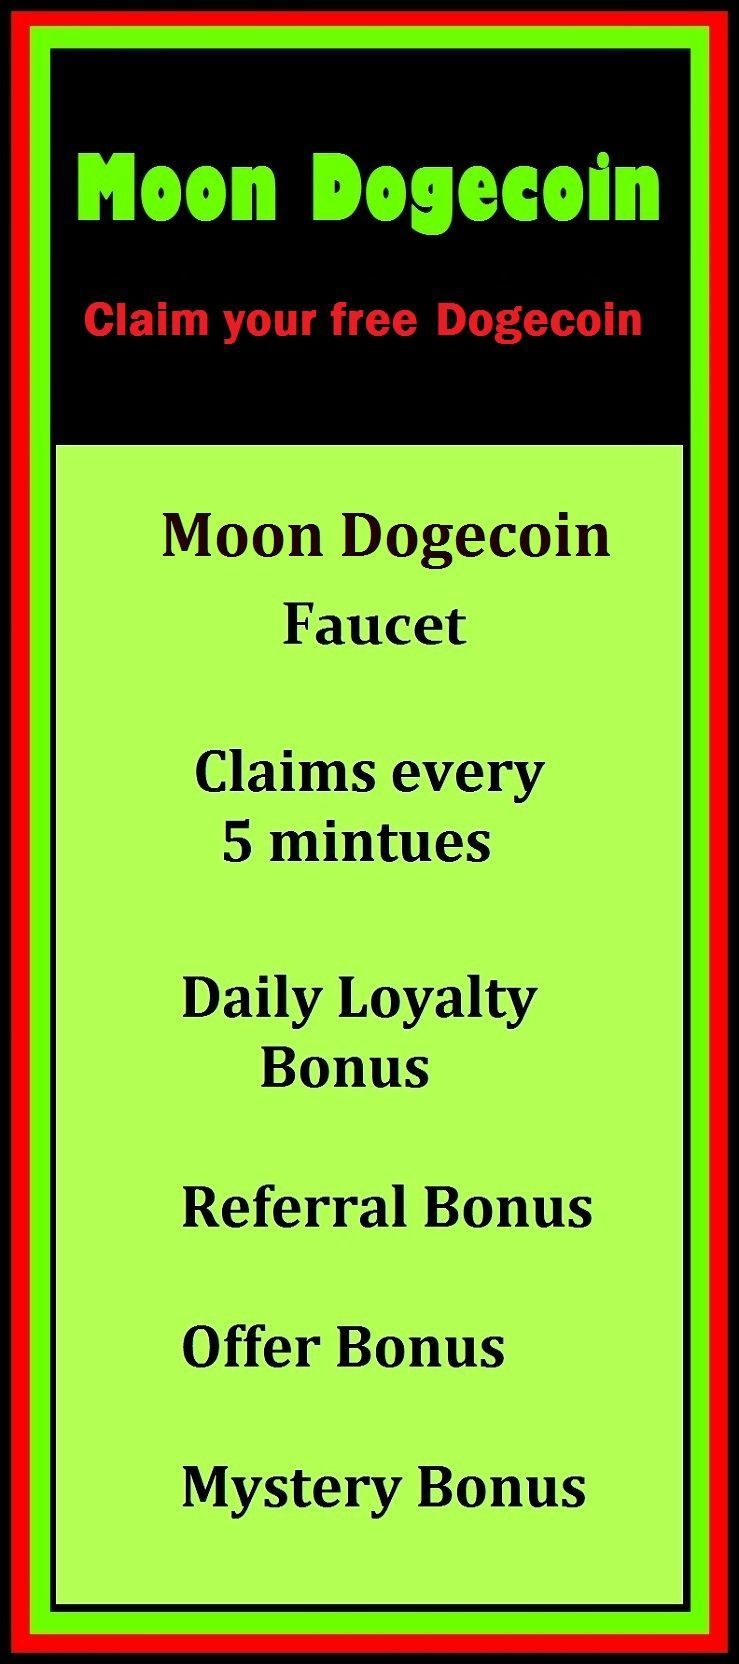 Moon Dogecoin Faucet ,internet currency,make money, cryptocurrencies